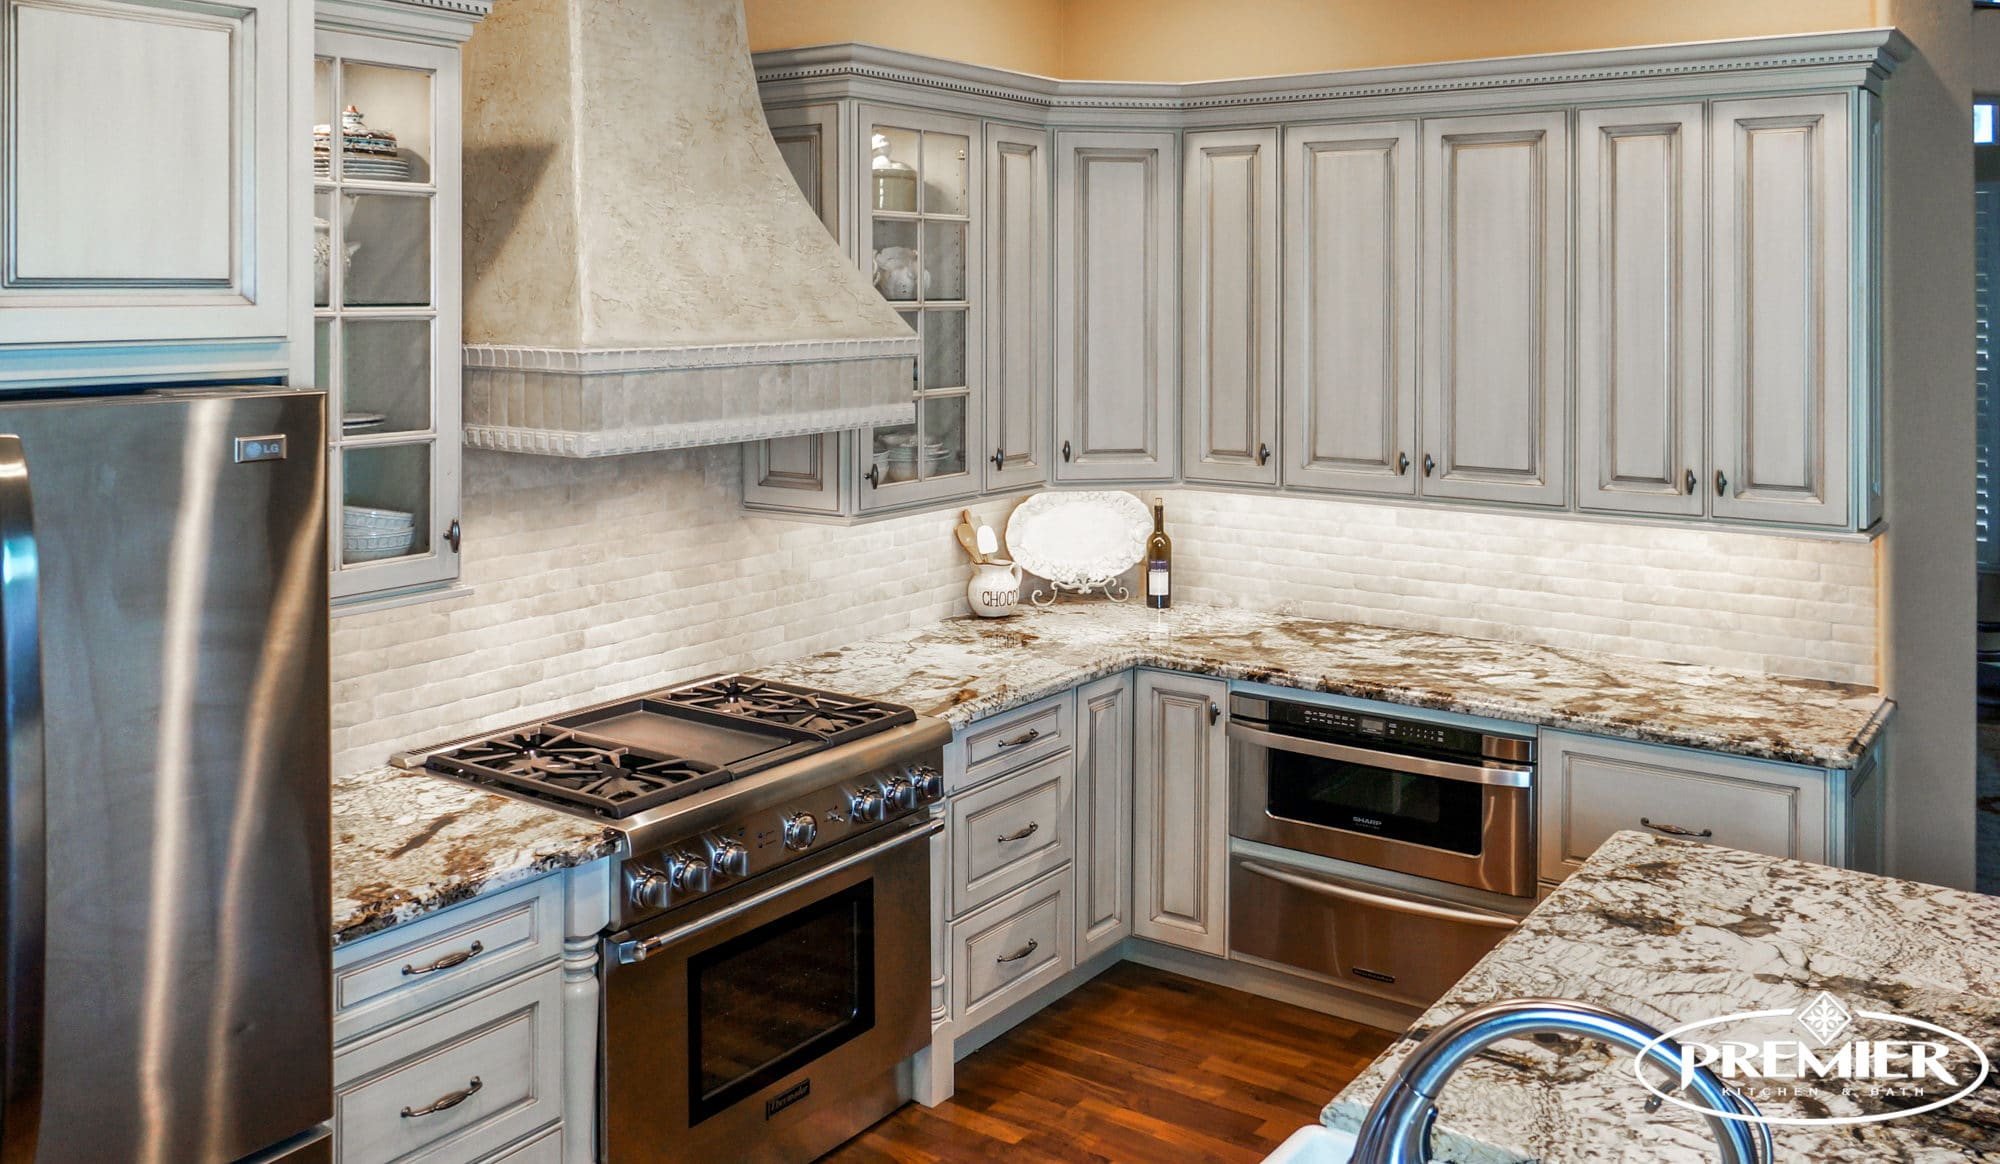 kitchen & bath 3d design local remodeling contractors bathroom designers enjoy painless makeovers and other home services with premier in scottsdale phoenix arizona